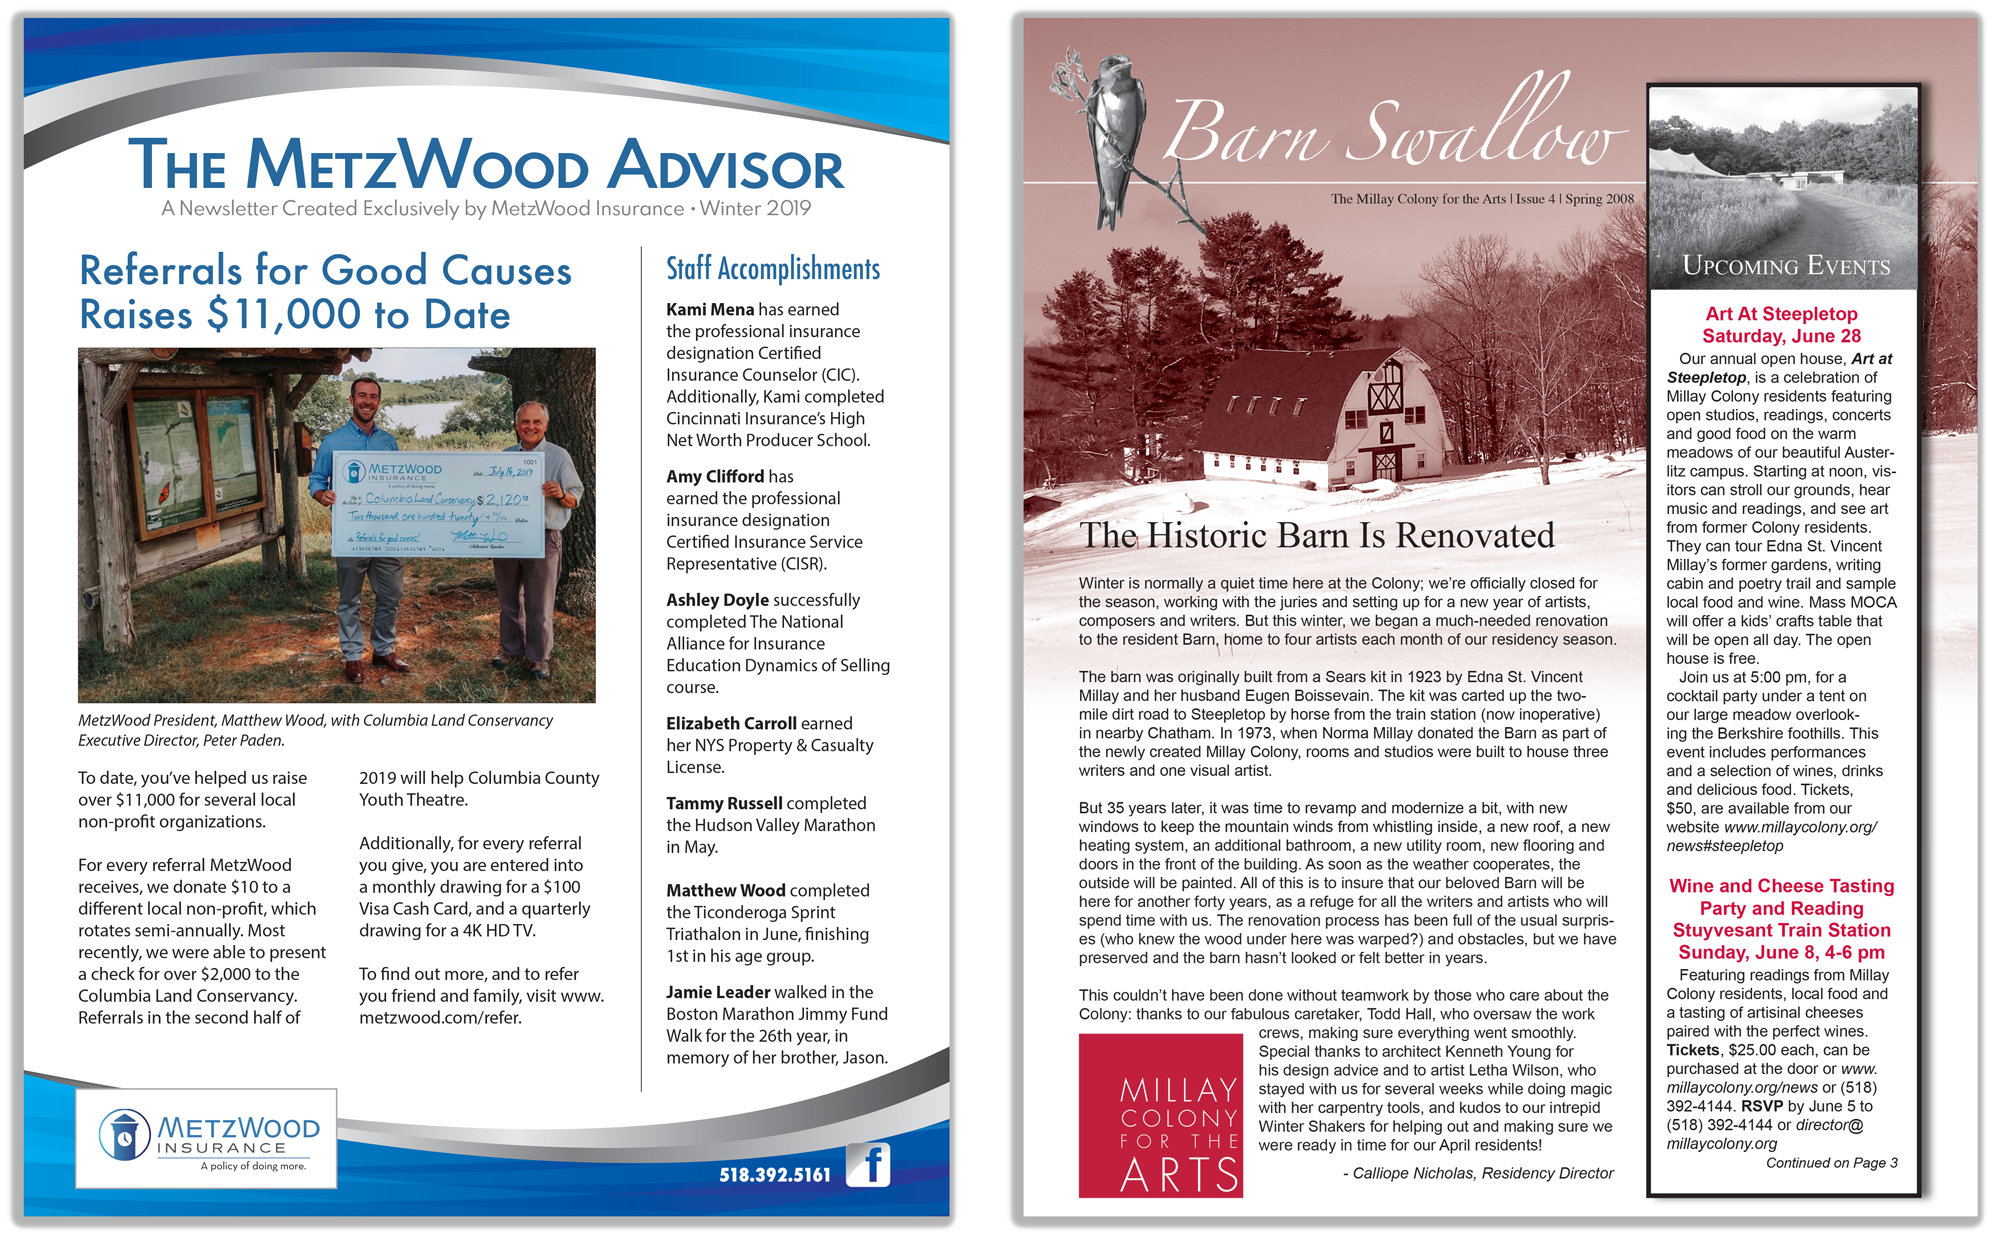 The MetzWood Advisor and the Millay Colony's Barn Swallow newsletter